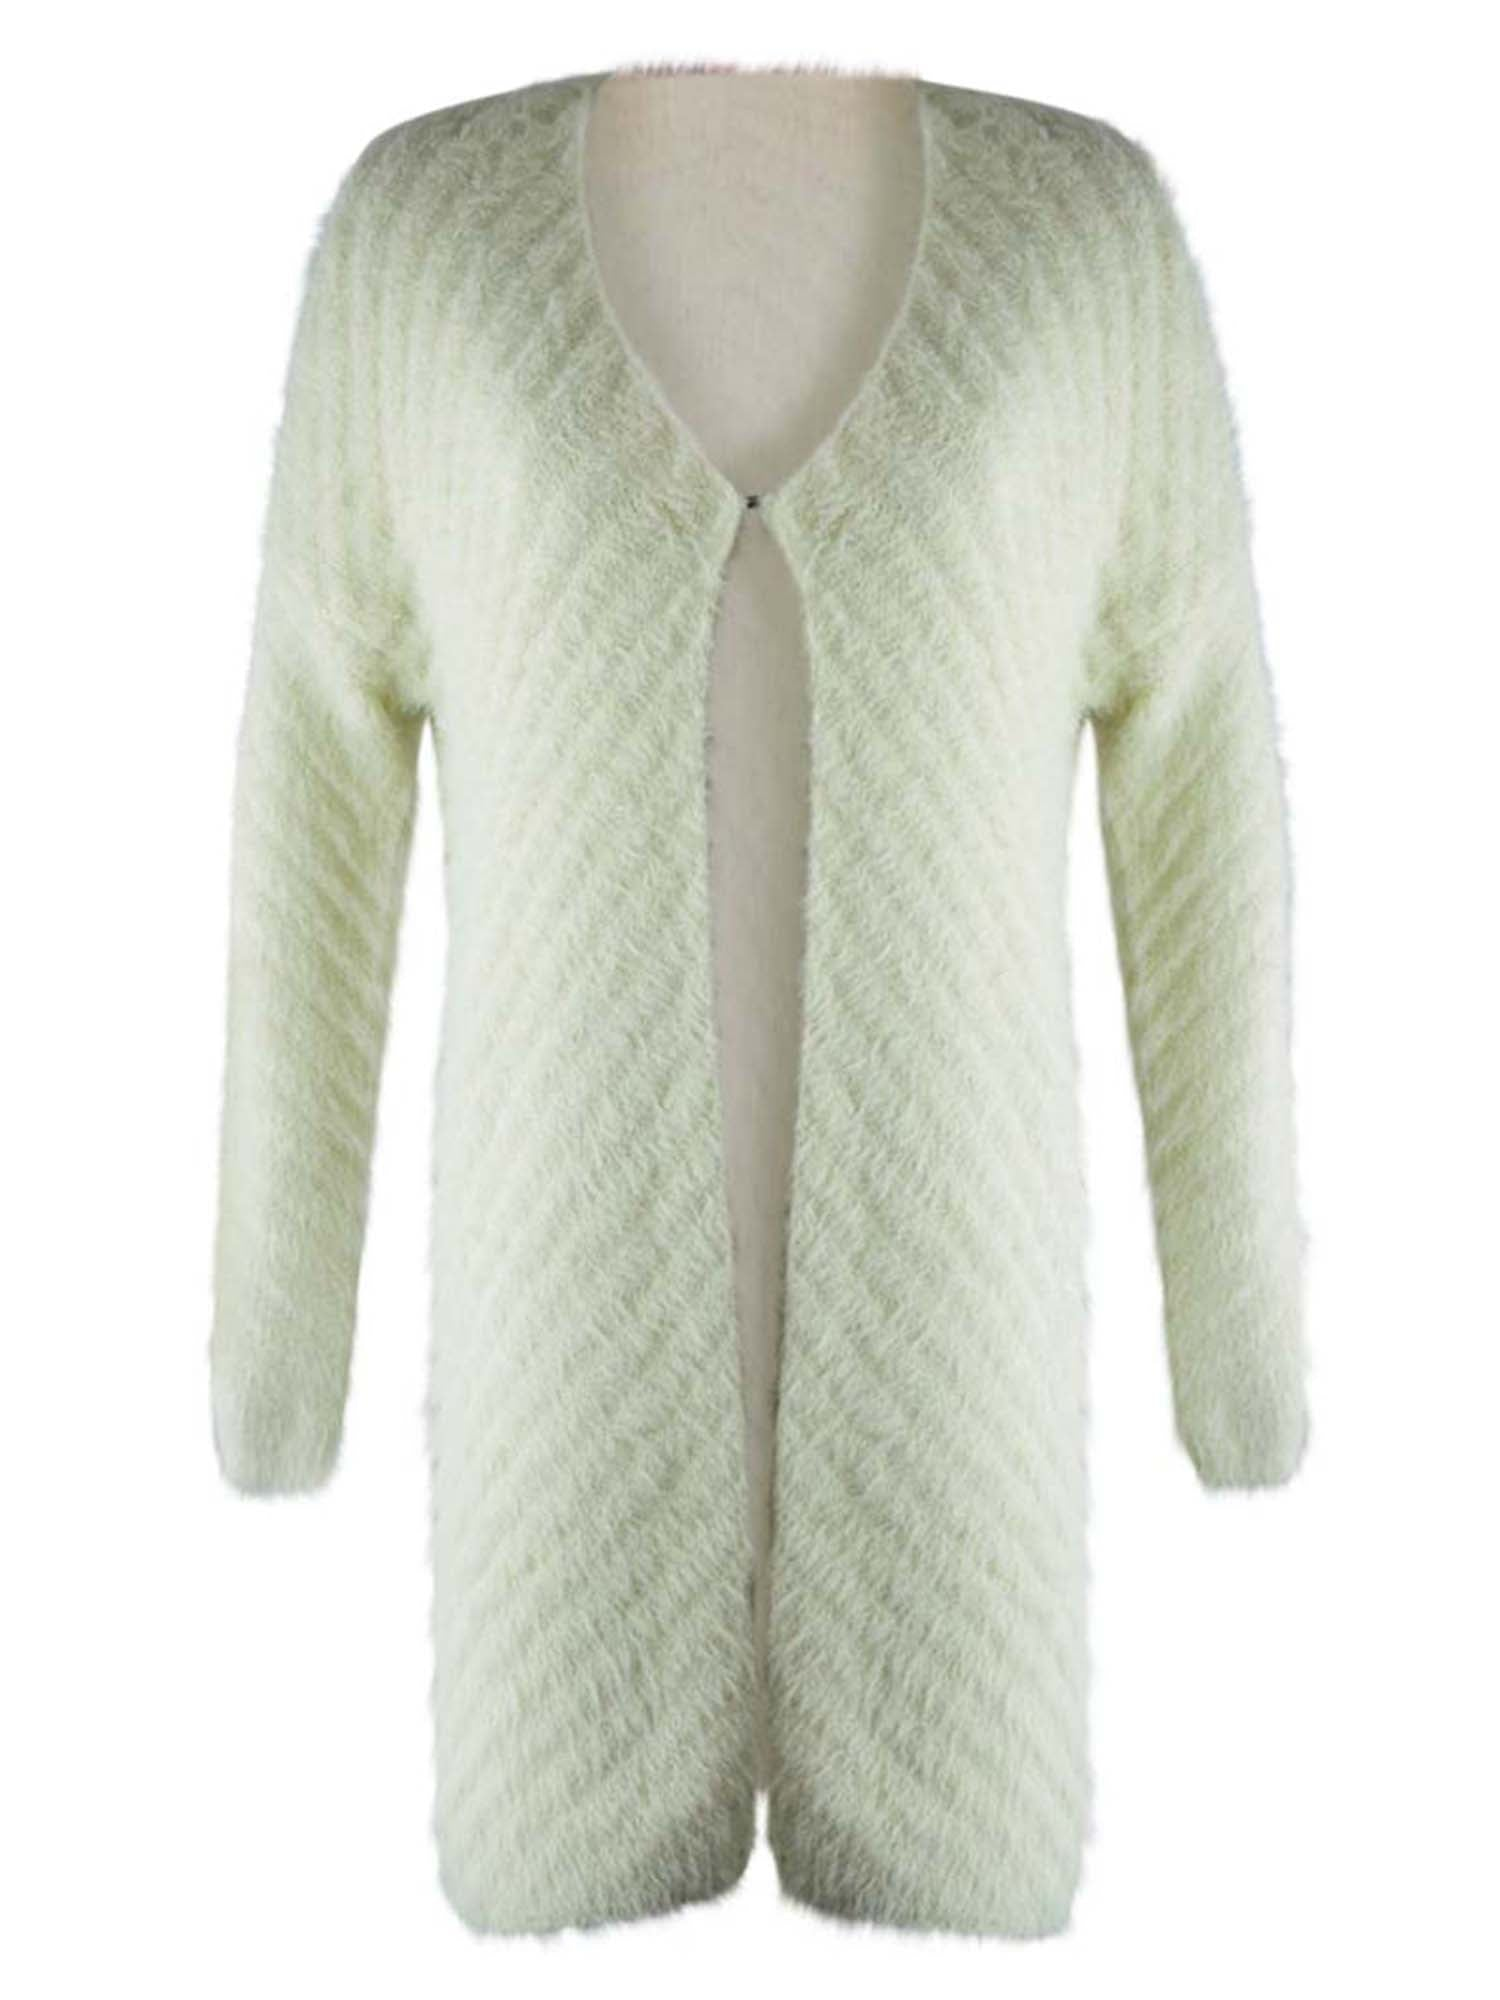 Fuzzy Knit Long Sleeve Cardigan Sweater Coat